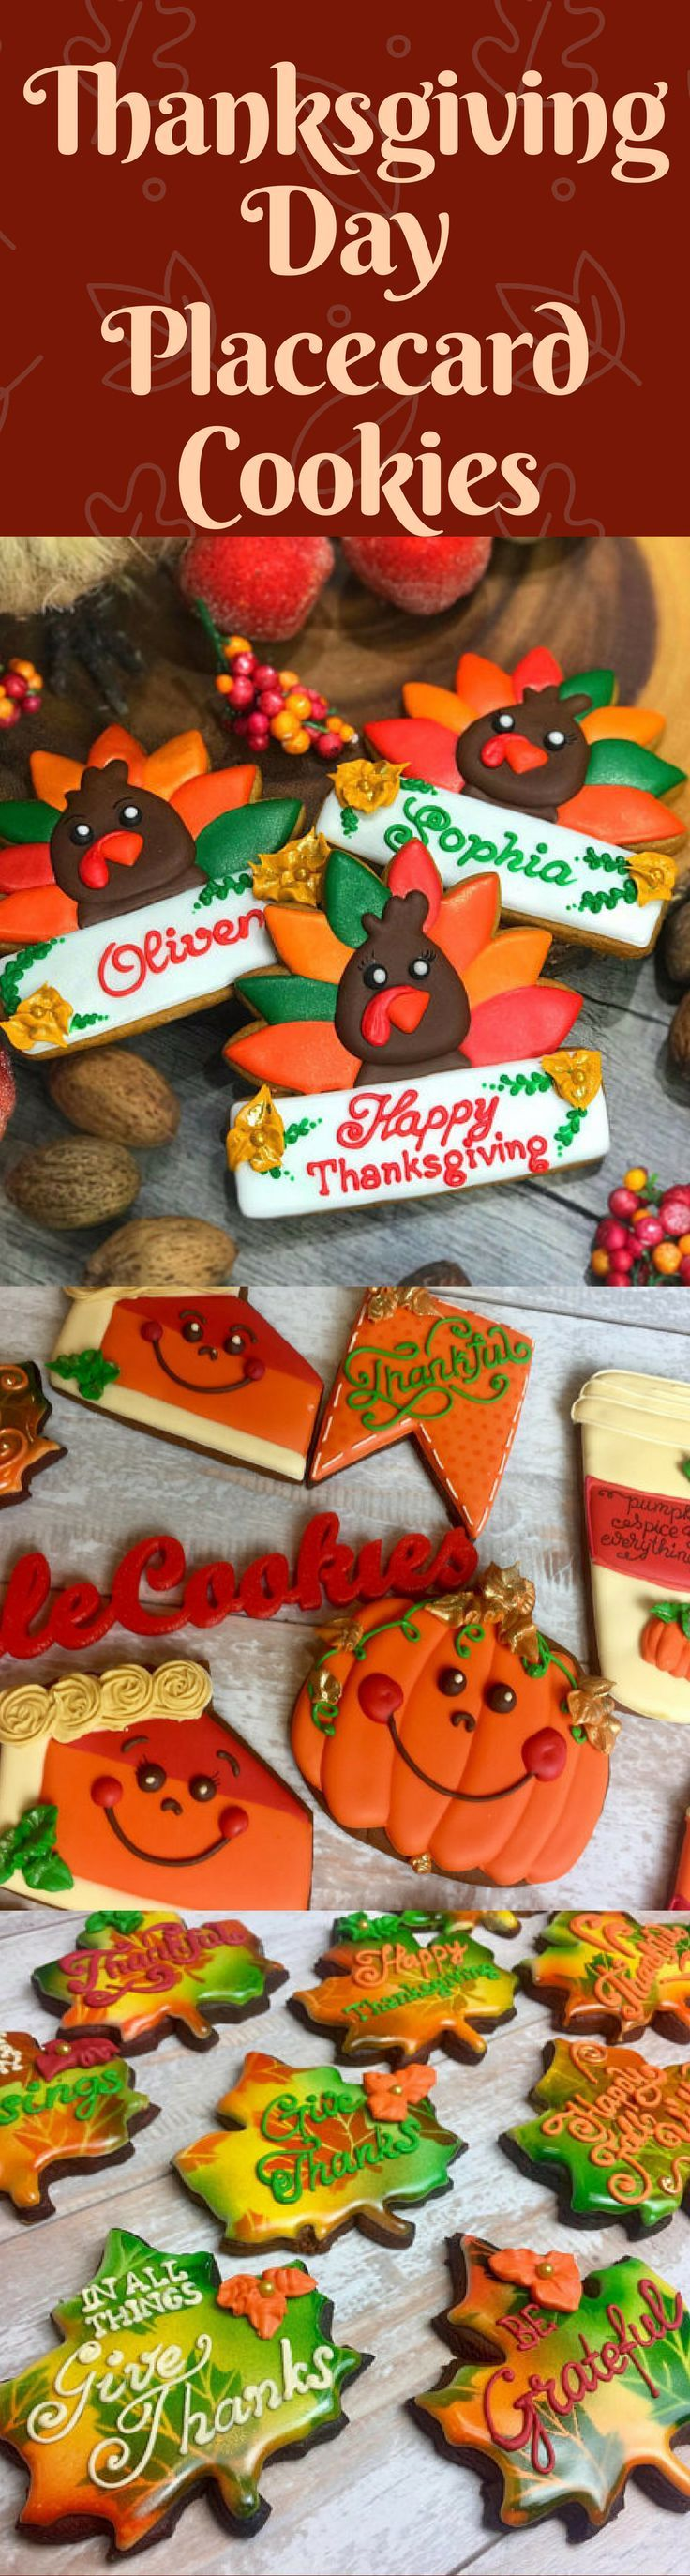 The best Thanksgiving cookie idea! These cookies are so beautiful and yummy! Thanksgiving place card cookies- Turkey cookies with names - Thanksgiving Day cookies, Thanksgiving name cookies, Thanksgiving dessert #thanksgiving #thanksgivingday #thanksgivingcookies #turkey #cookies #etsy #affiliate